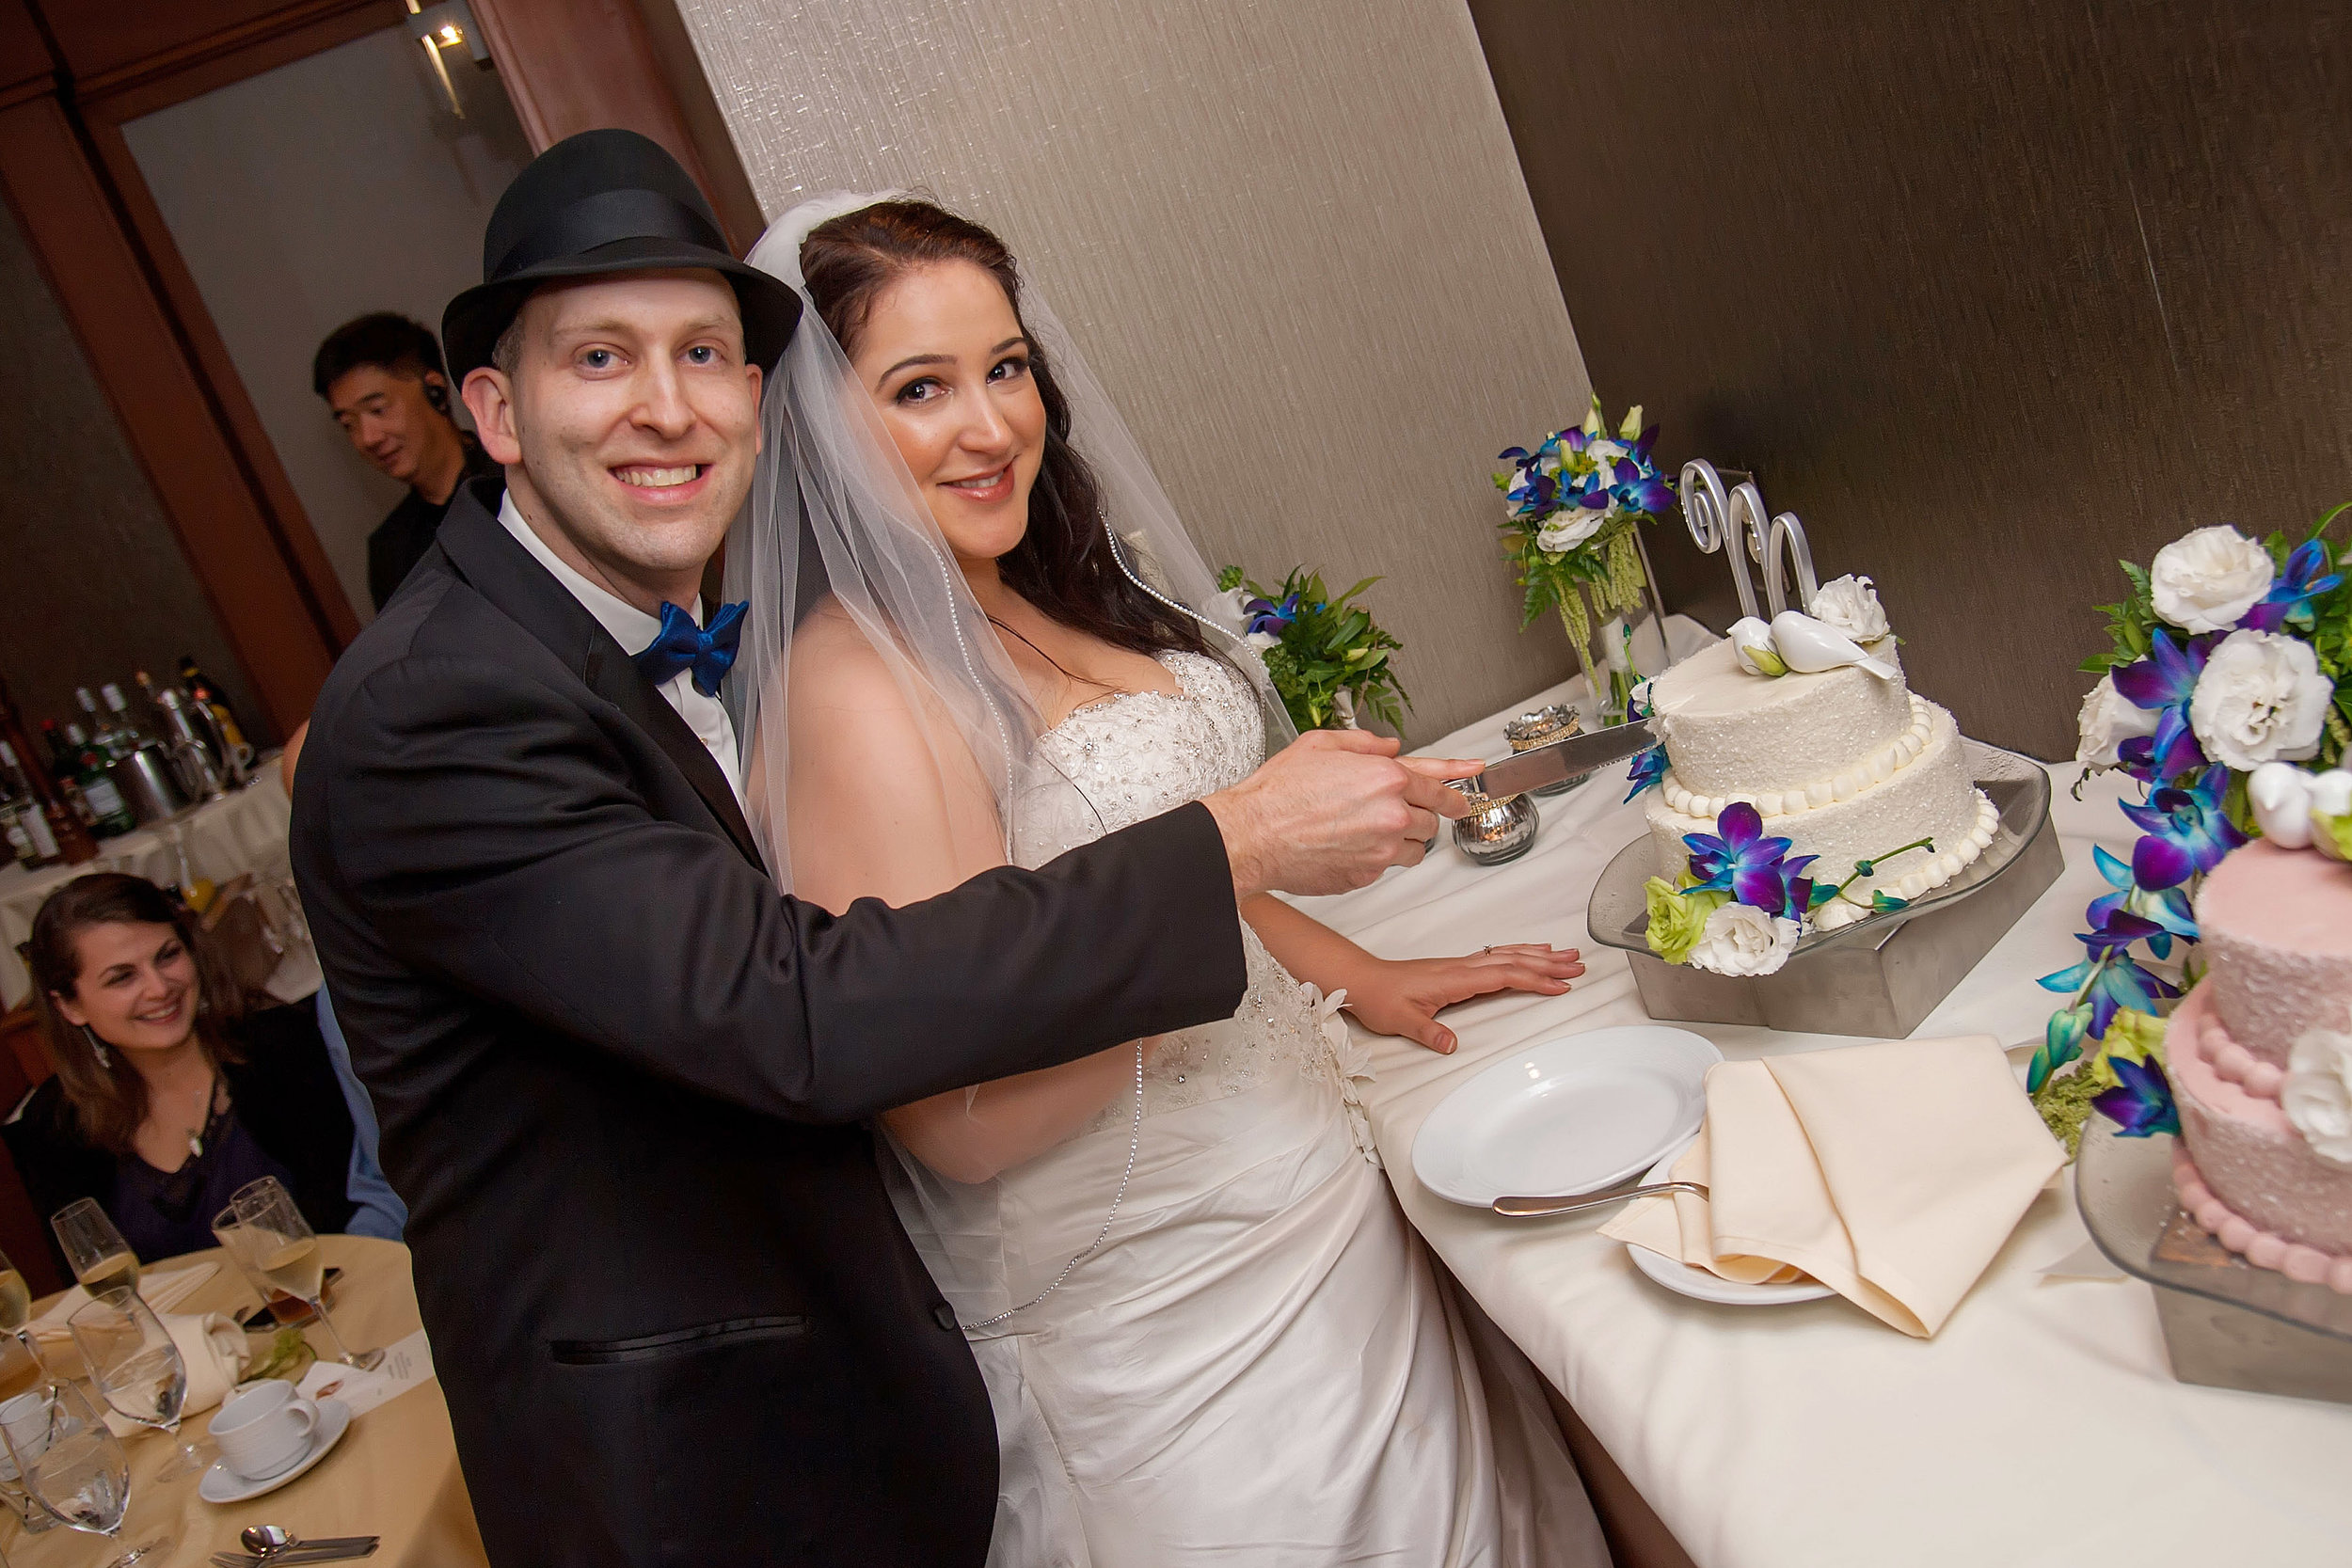 Bride & Groom Cutting Cake.jpg